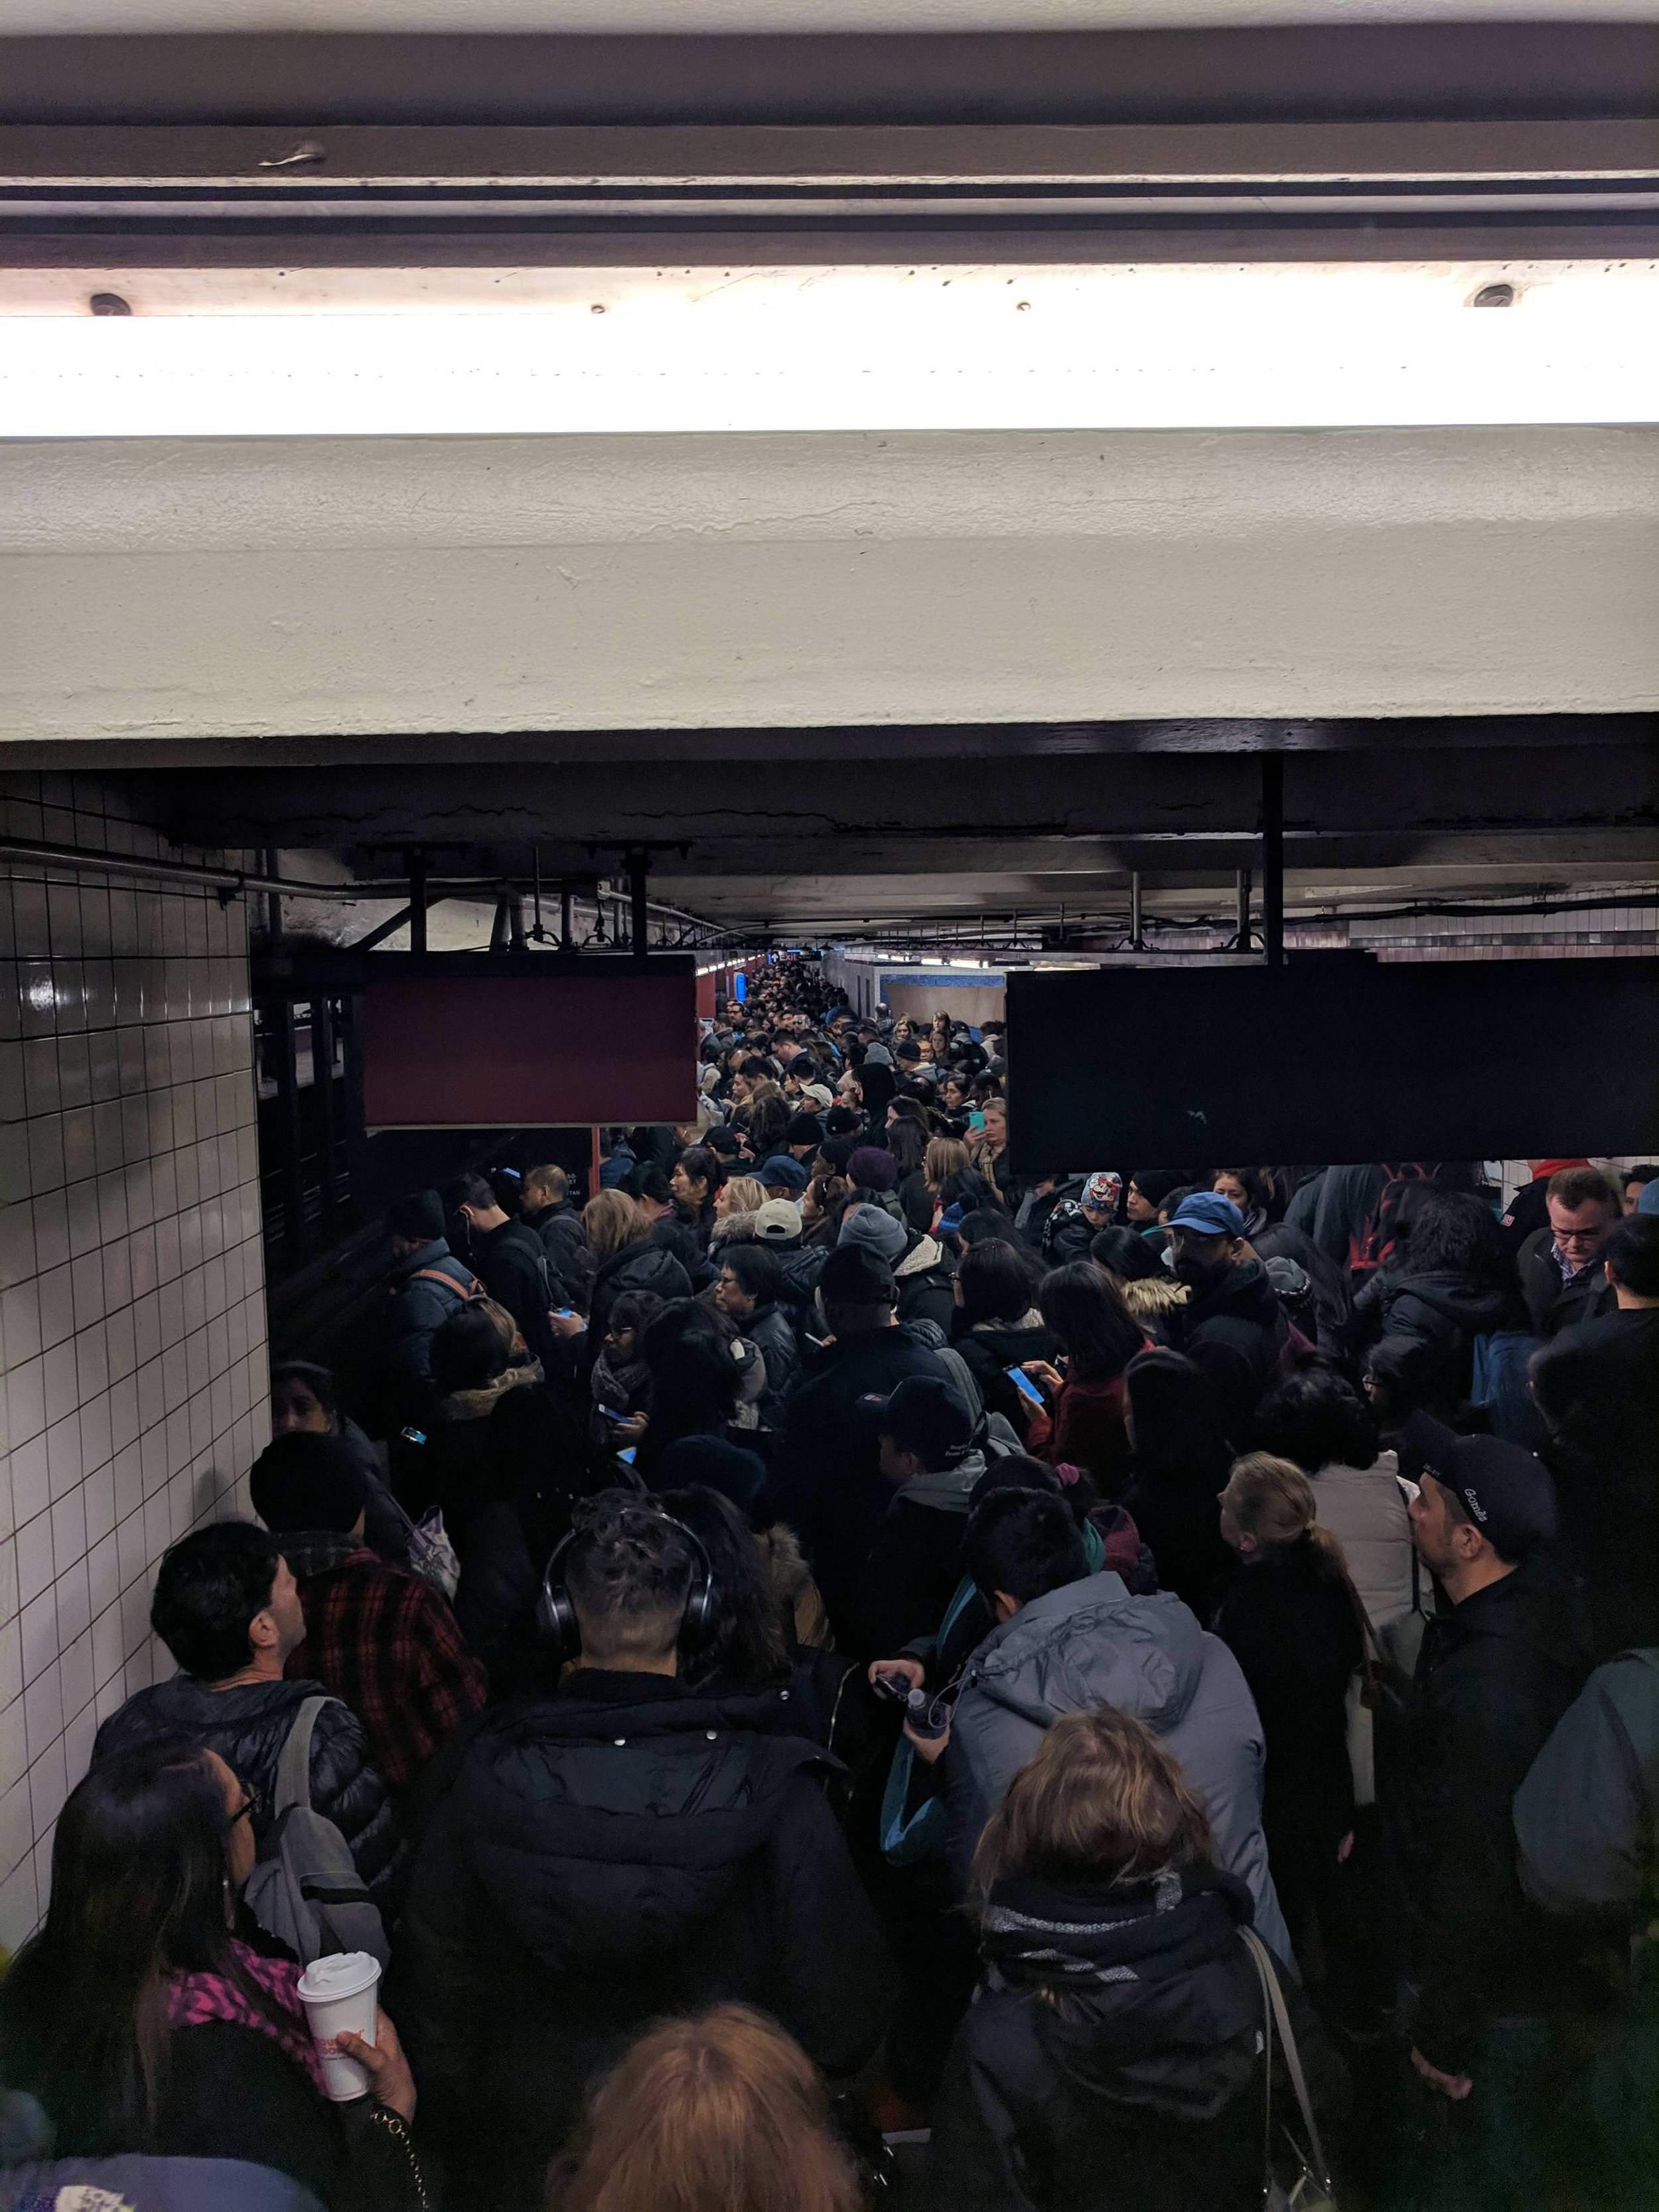 Commuters attempt to get to the E train platform at Court Square in Long Island City. Photos courtesy of Euoi.